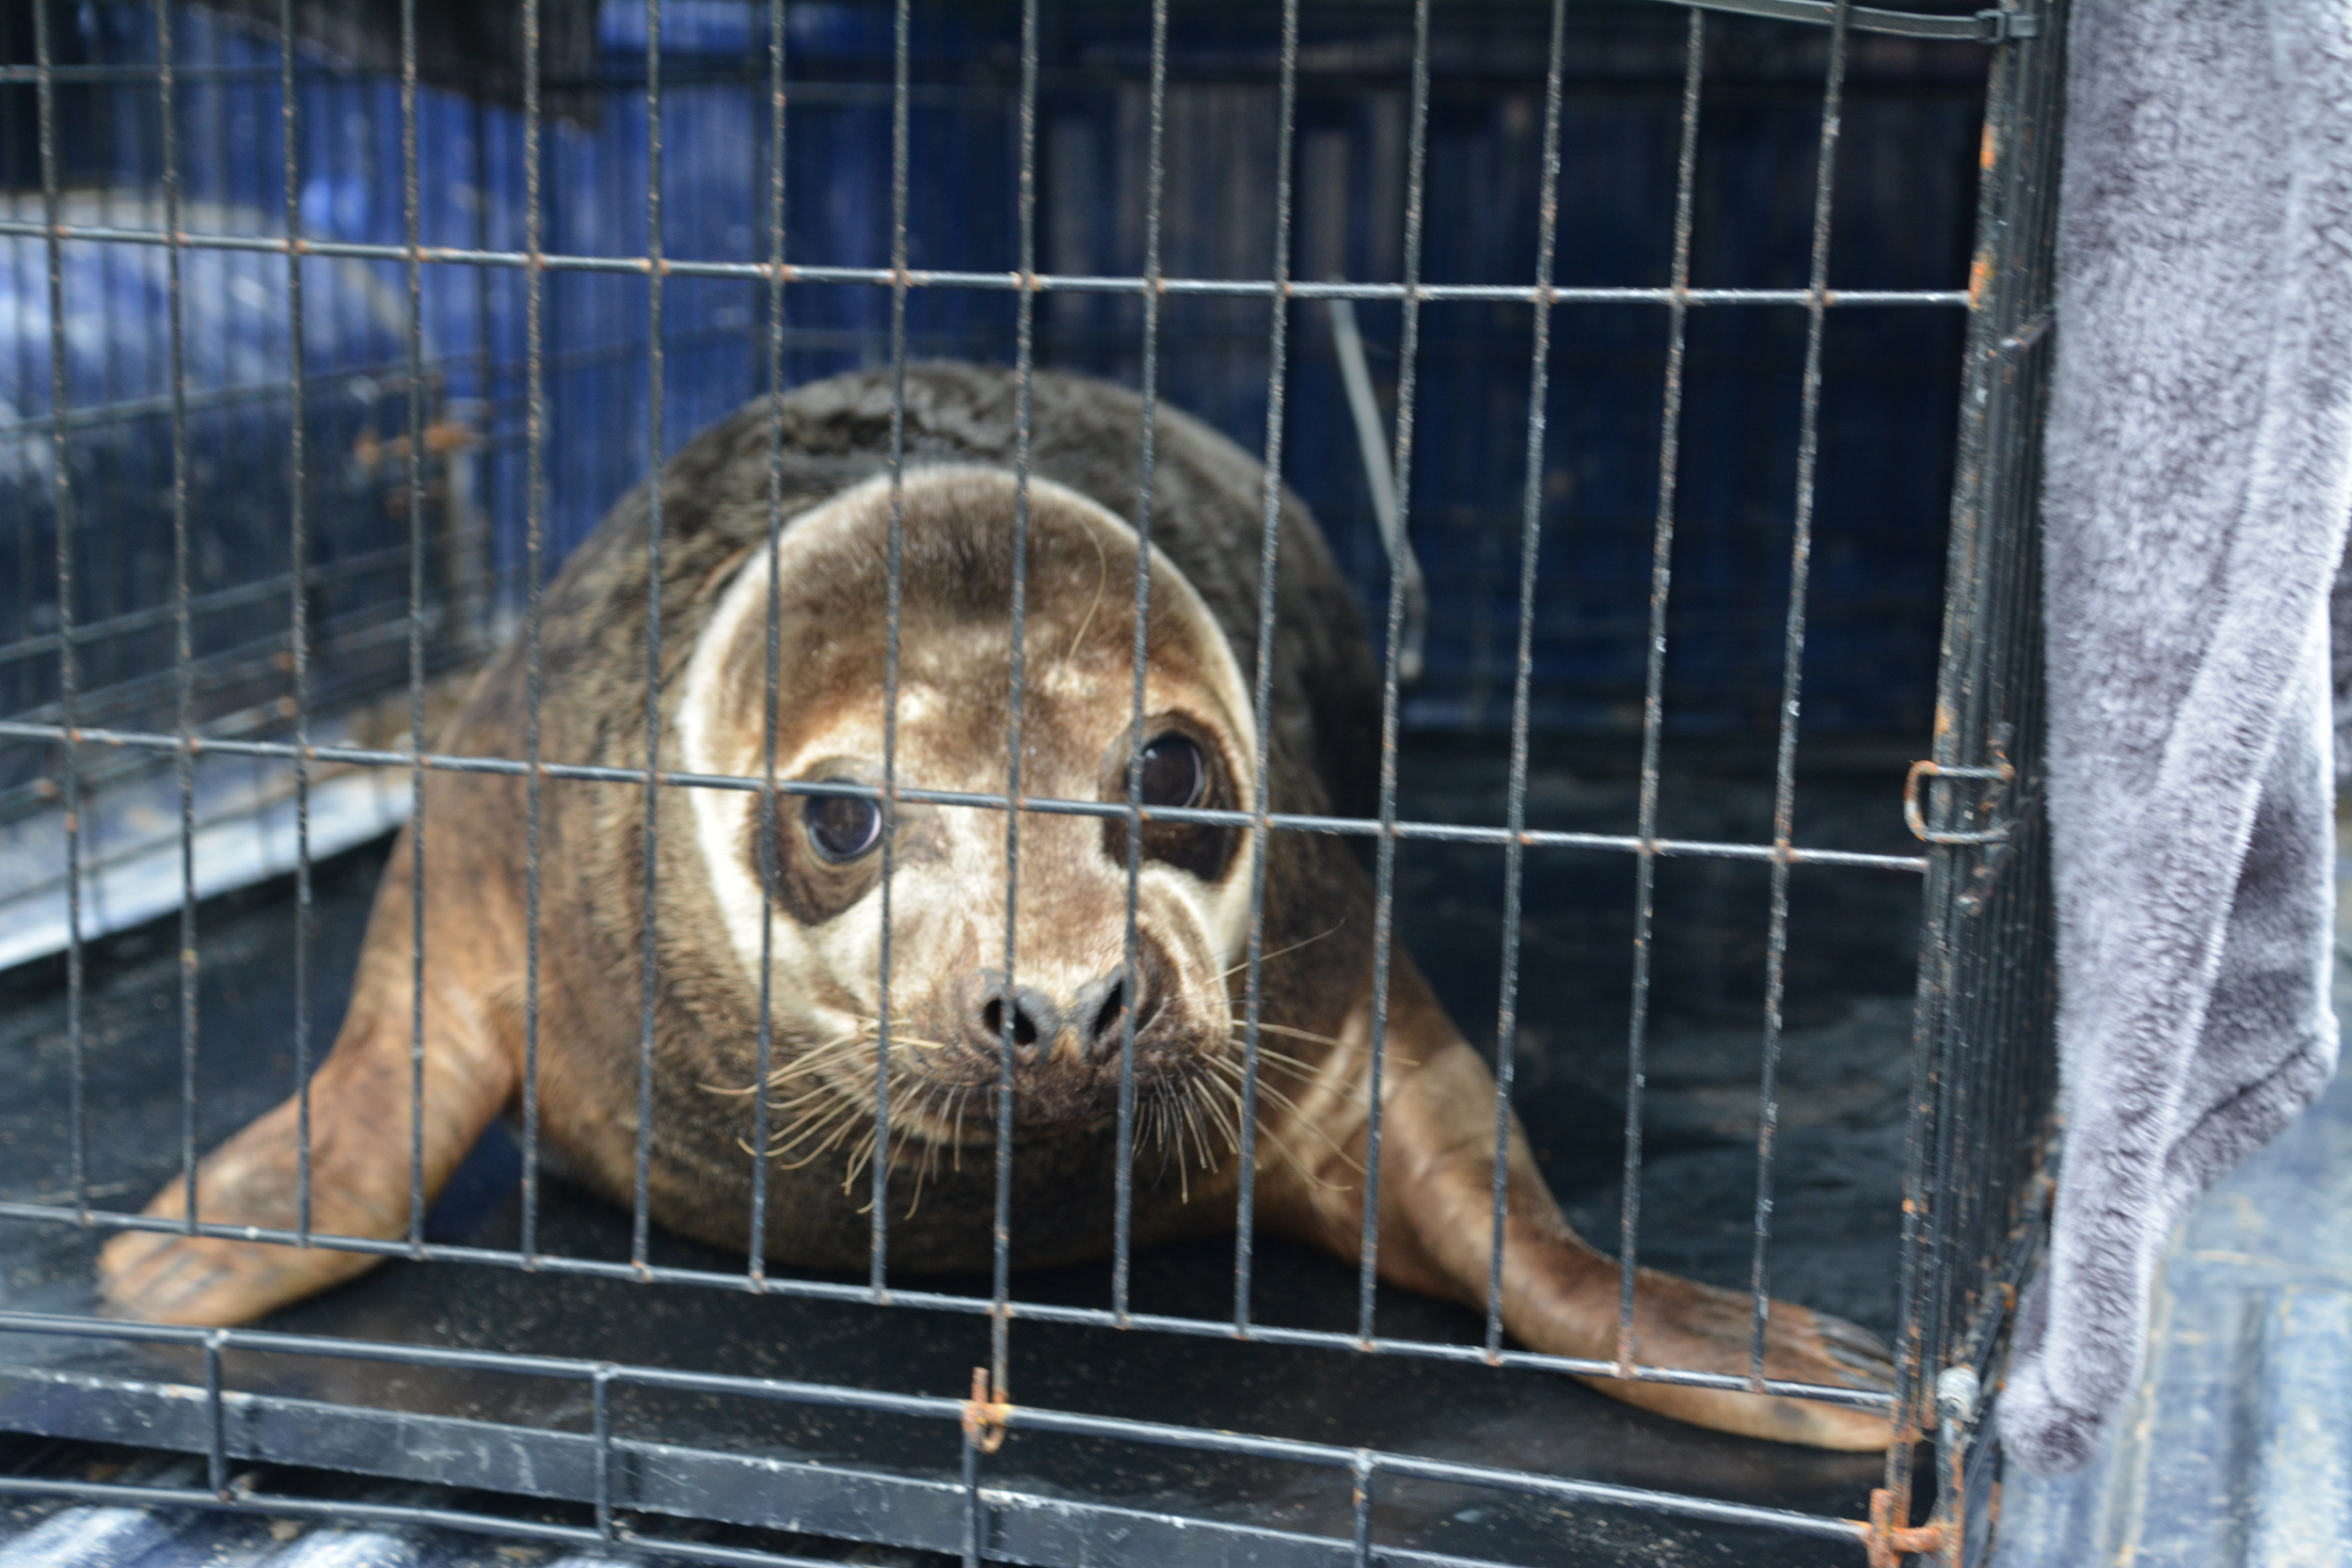 seal - 2016 - seal release - dr doom - grey seal - male - dog kennel - east coast - courtown - north beach.JPG